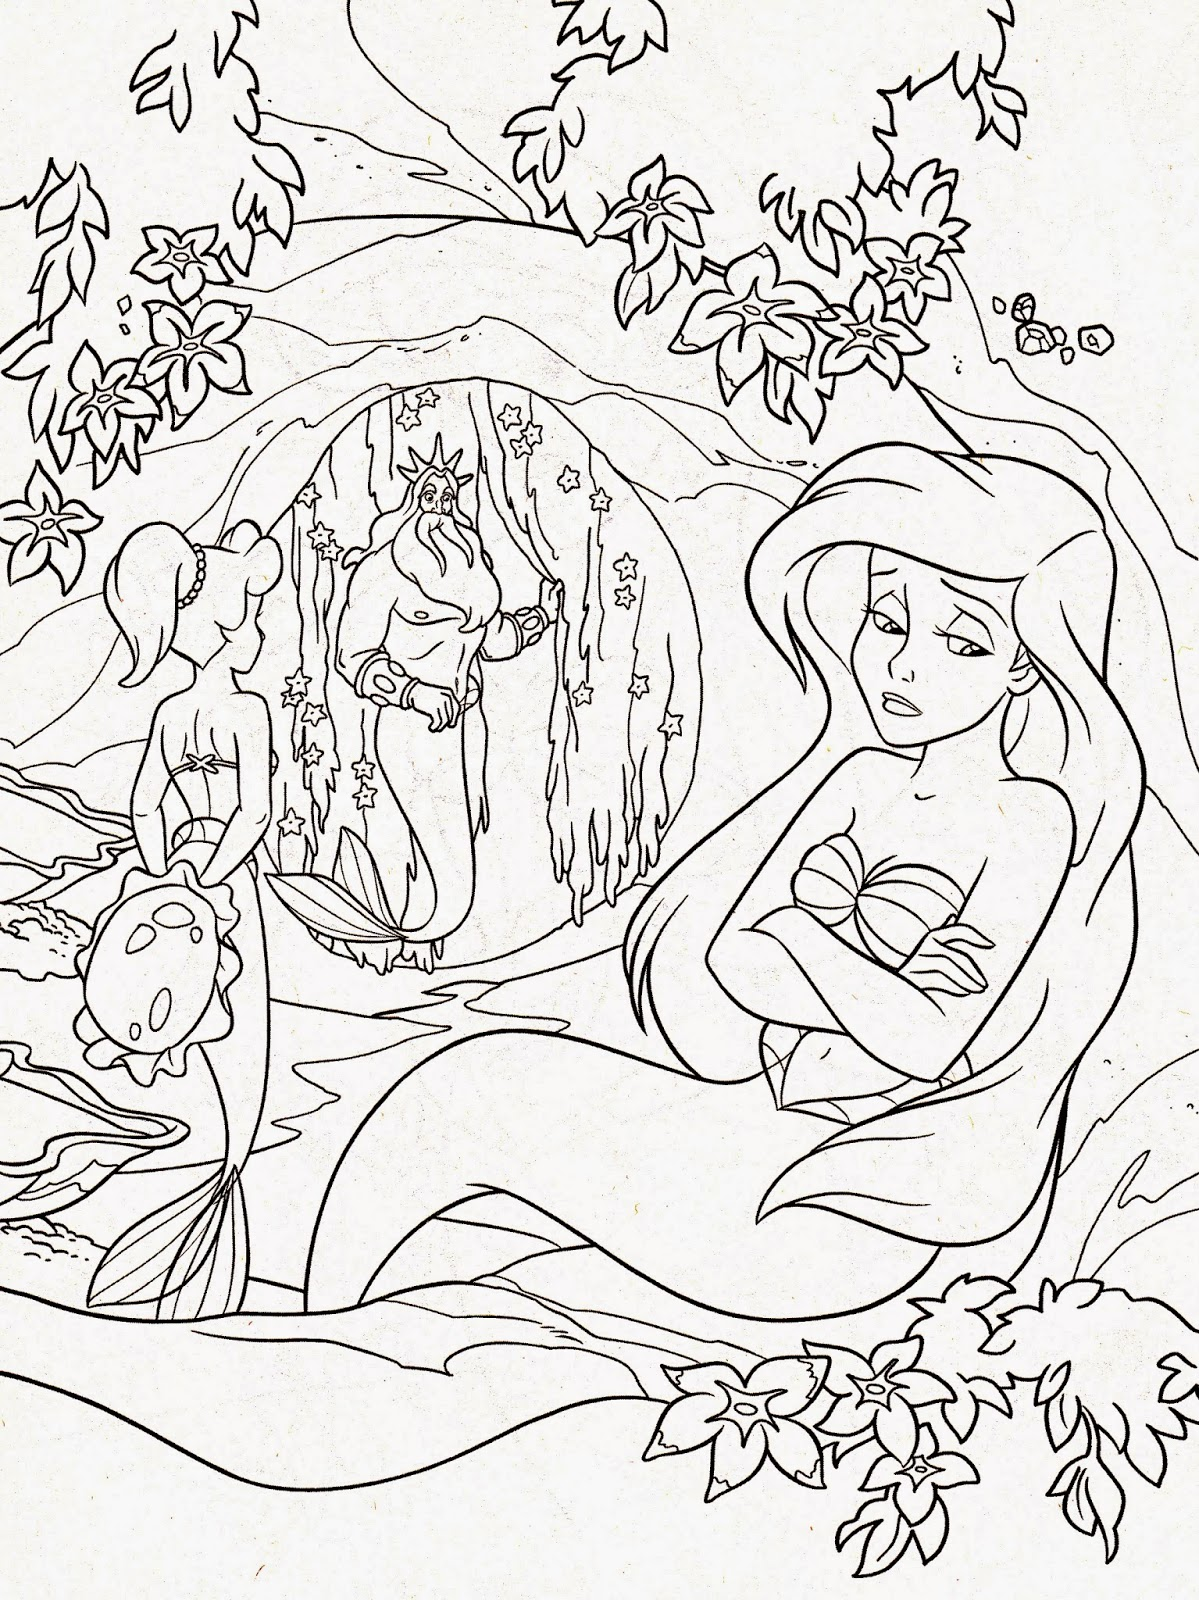 Coloring Pages: Disney Coloring Pages Free and Printable   colouring pages for adults disney